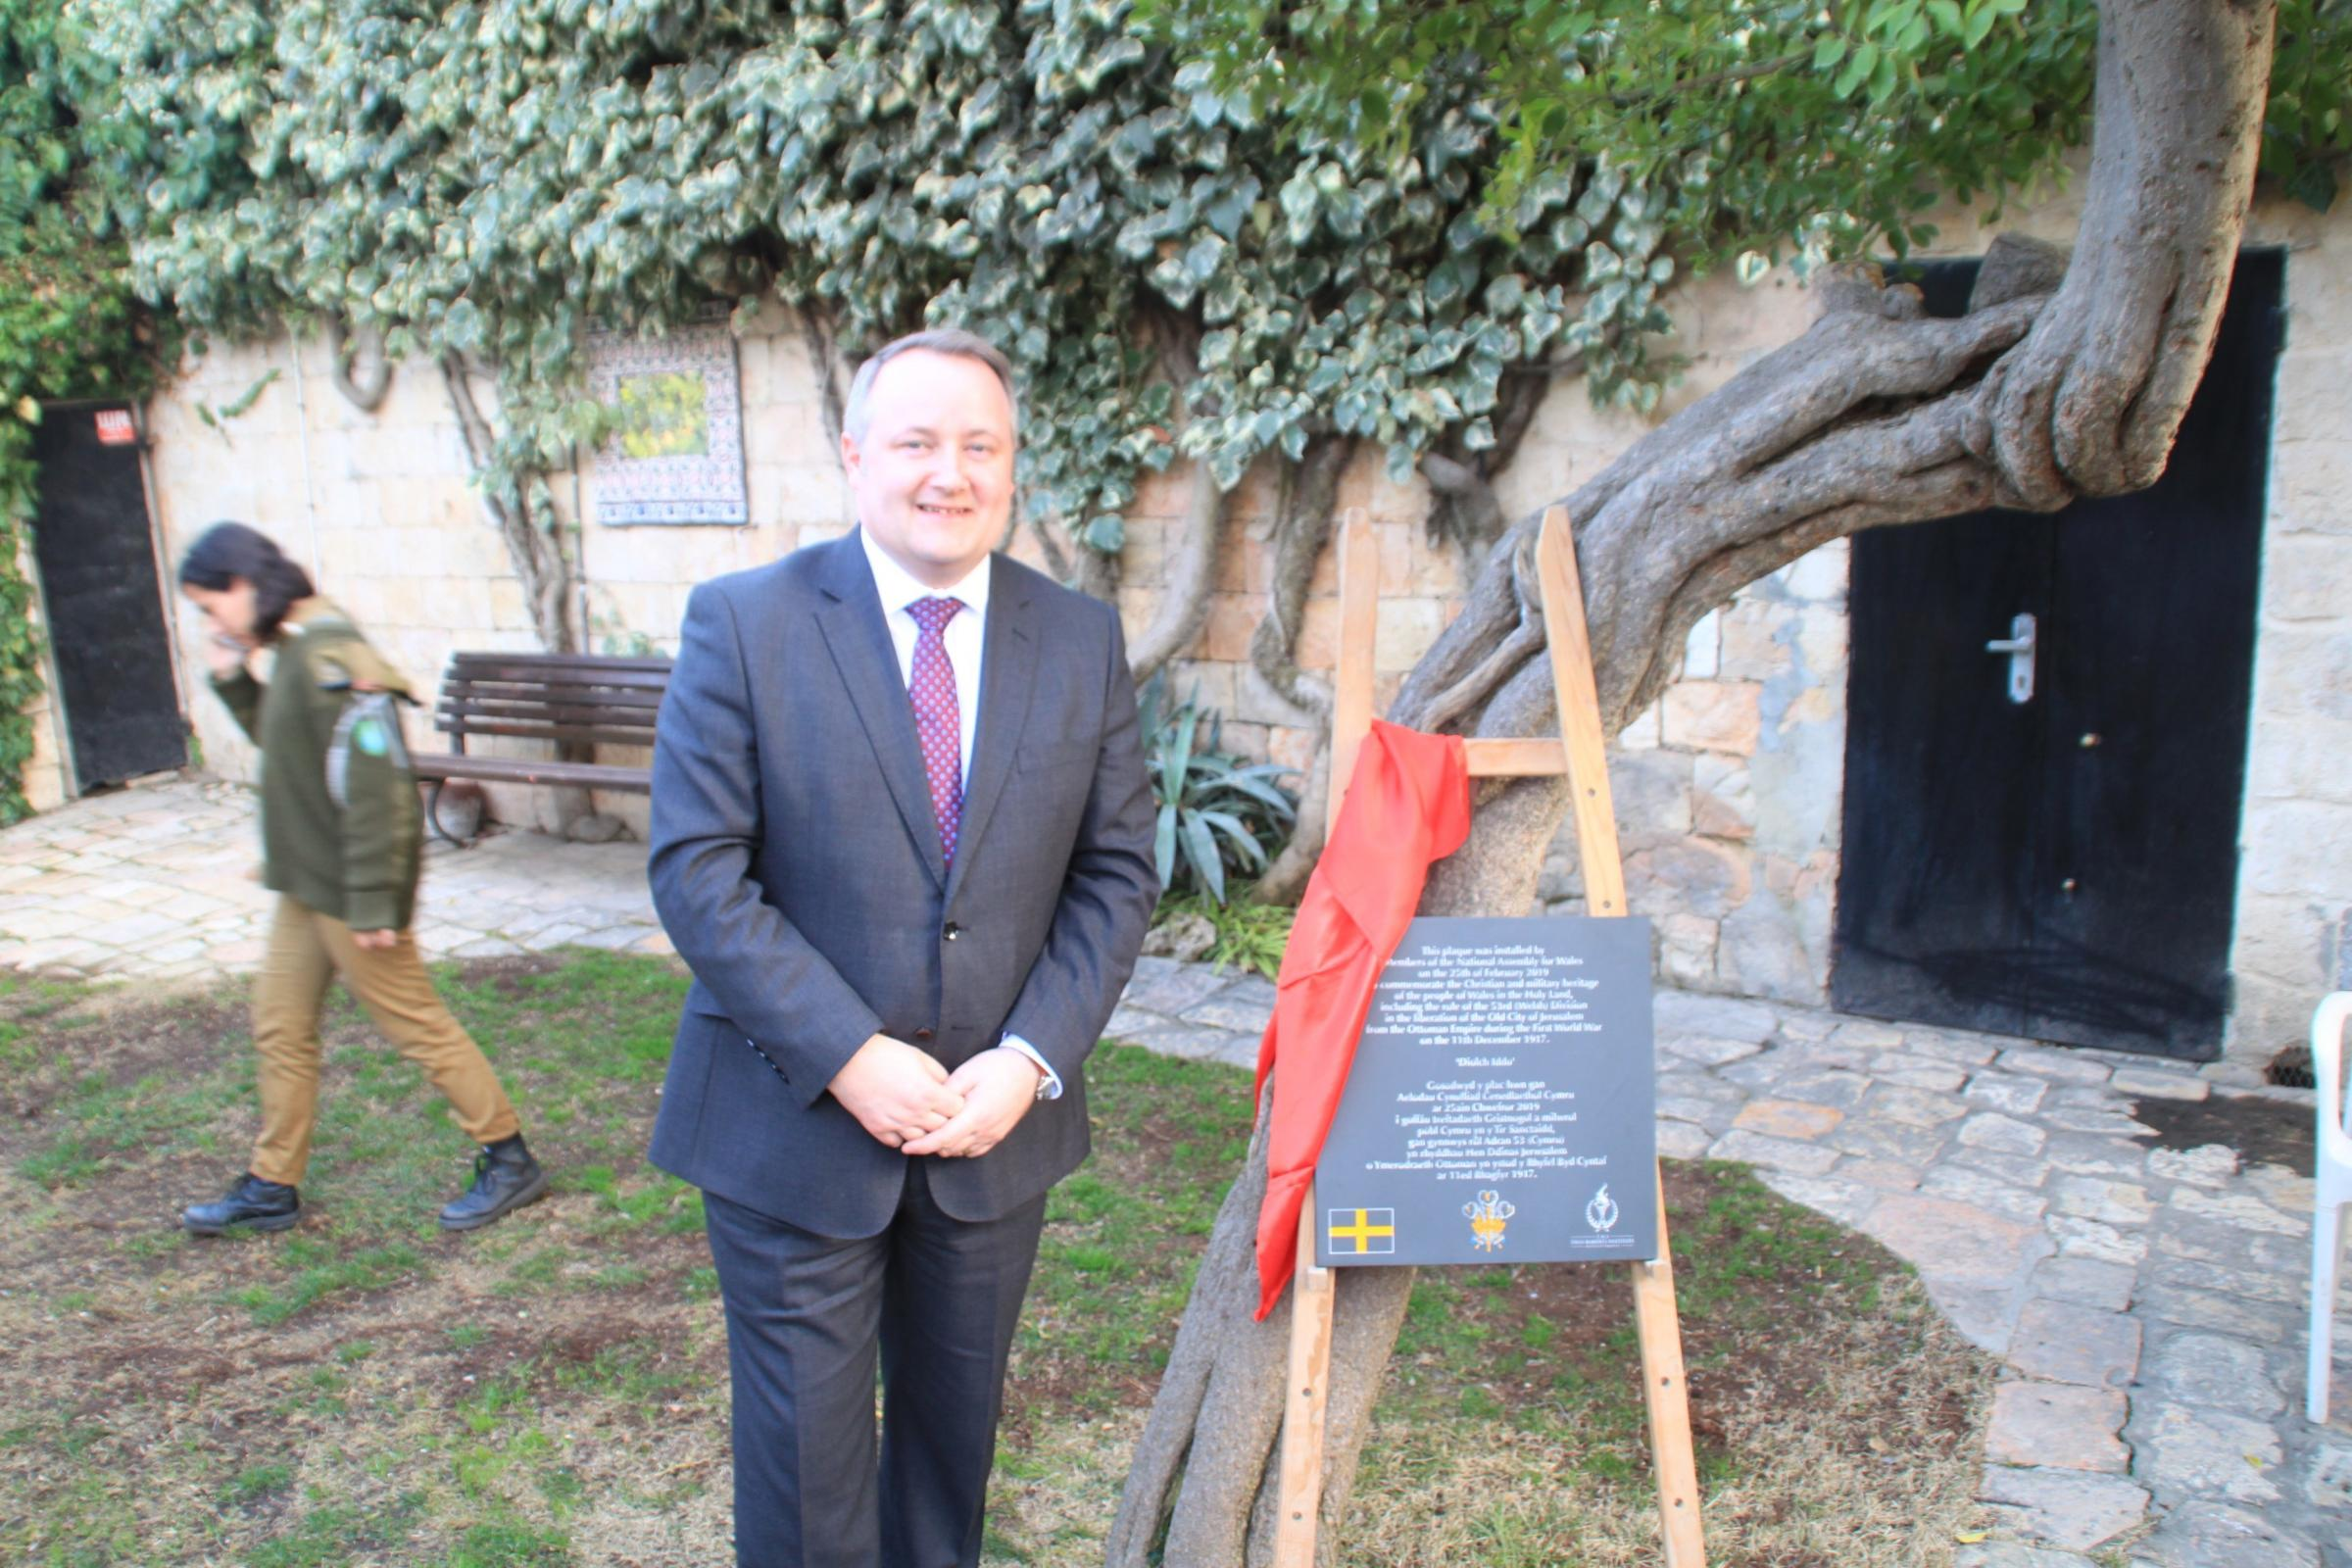 Clwyd West AM Darren Millar unveils a plaque in the Old City of Jerusalem